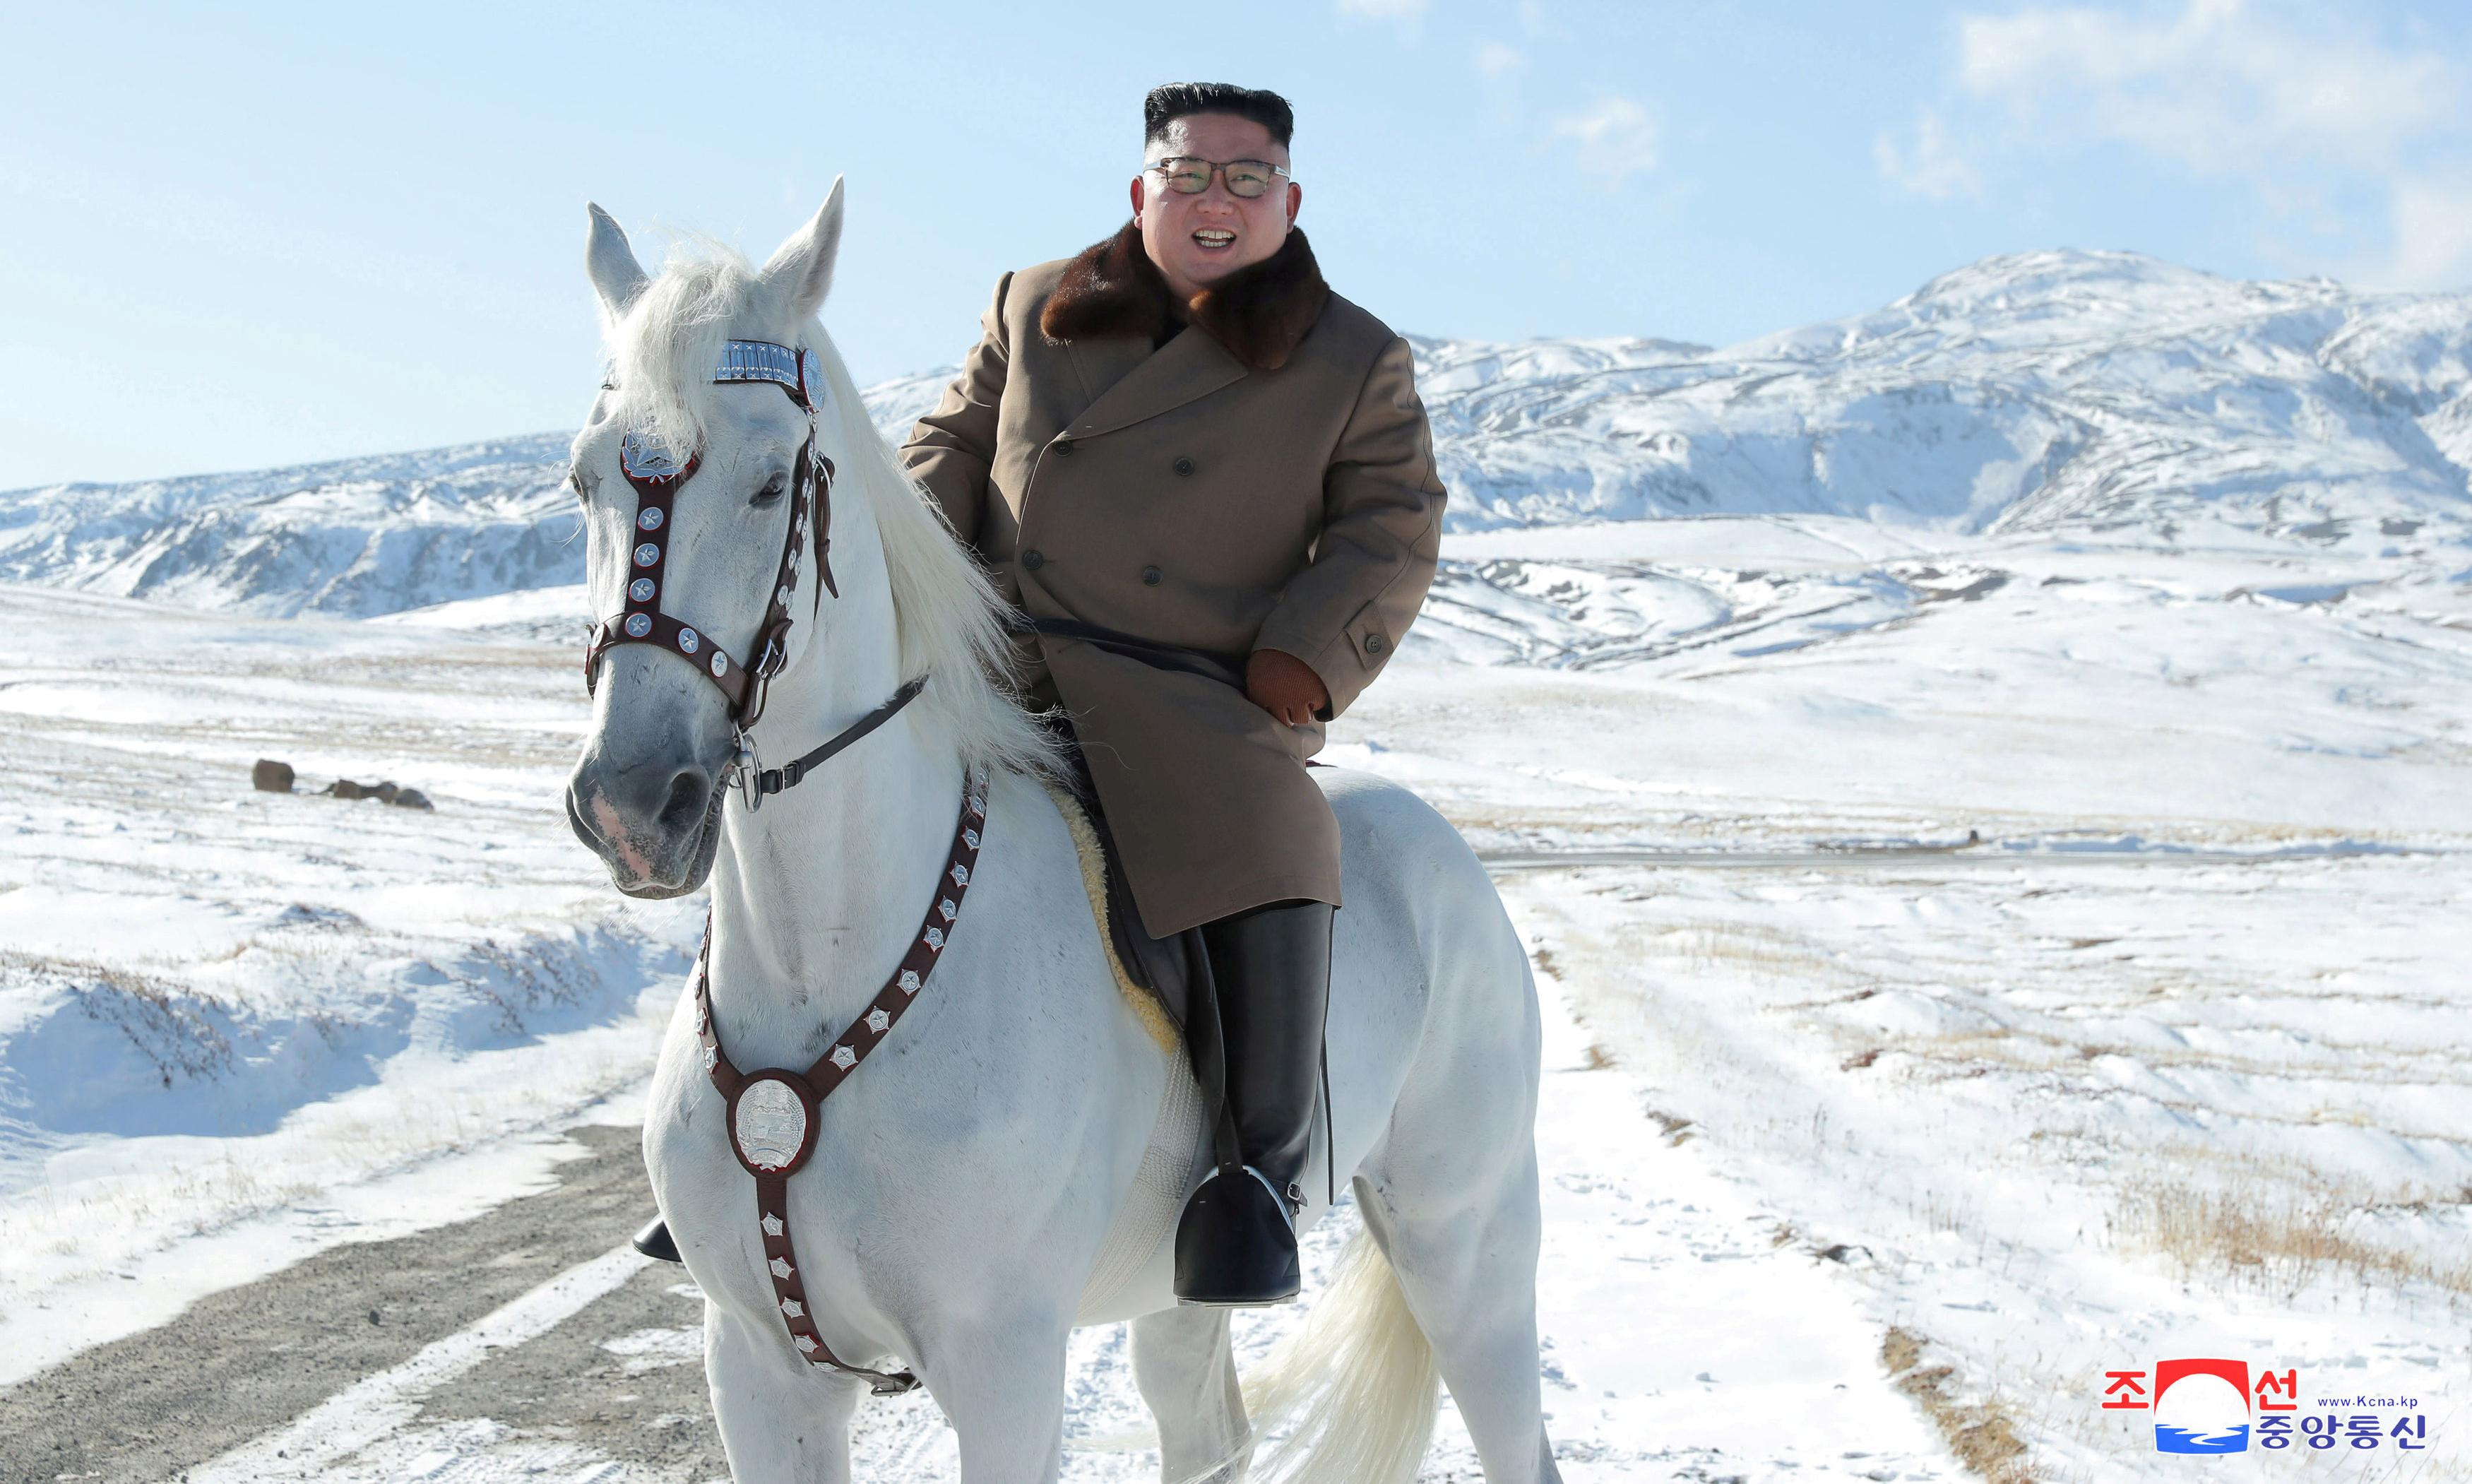 Kim Jong-un jockeys for attention with horse ride up sacred mountain